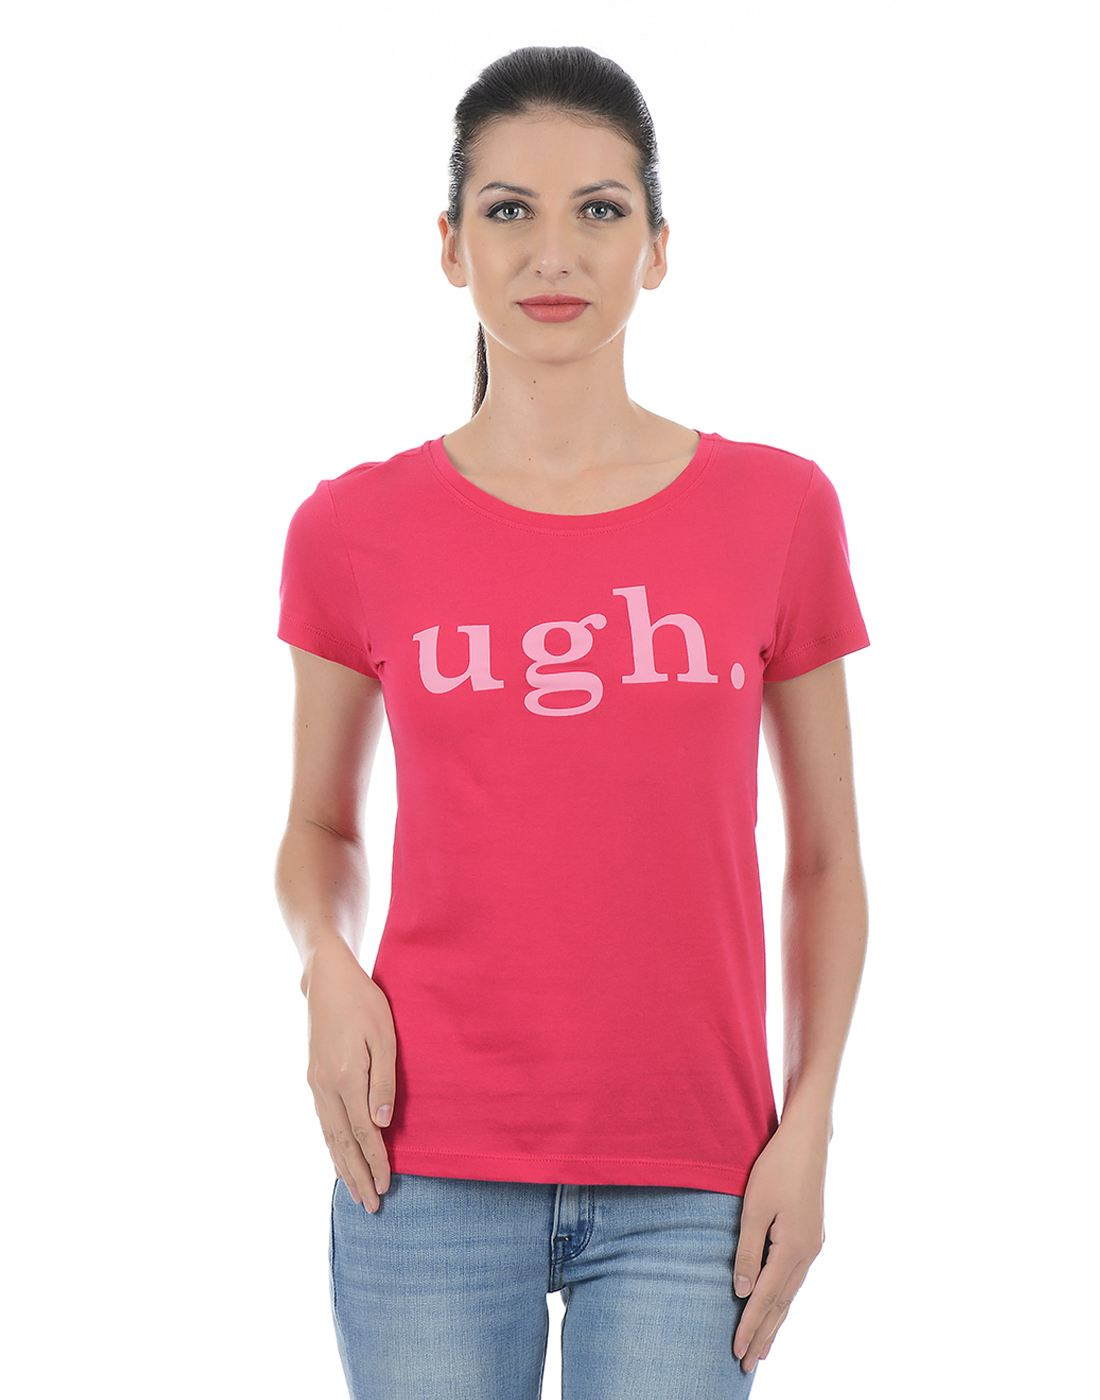 Only Women Casual Pink T-Shirt